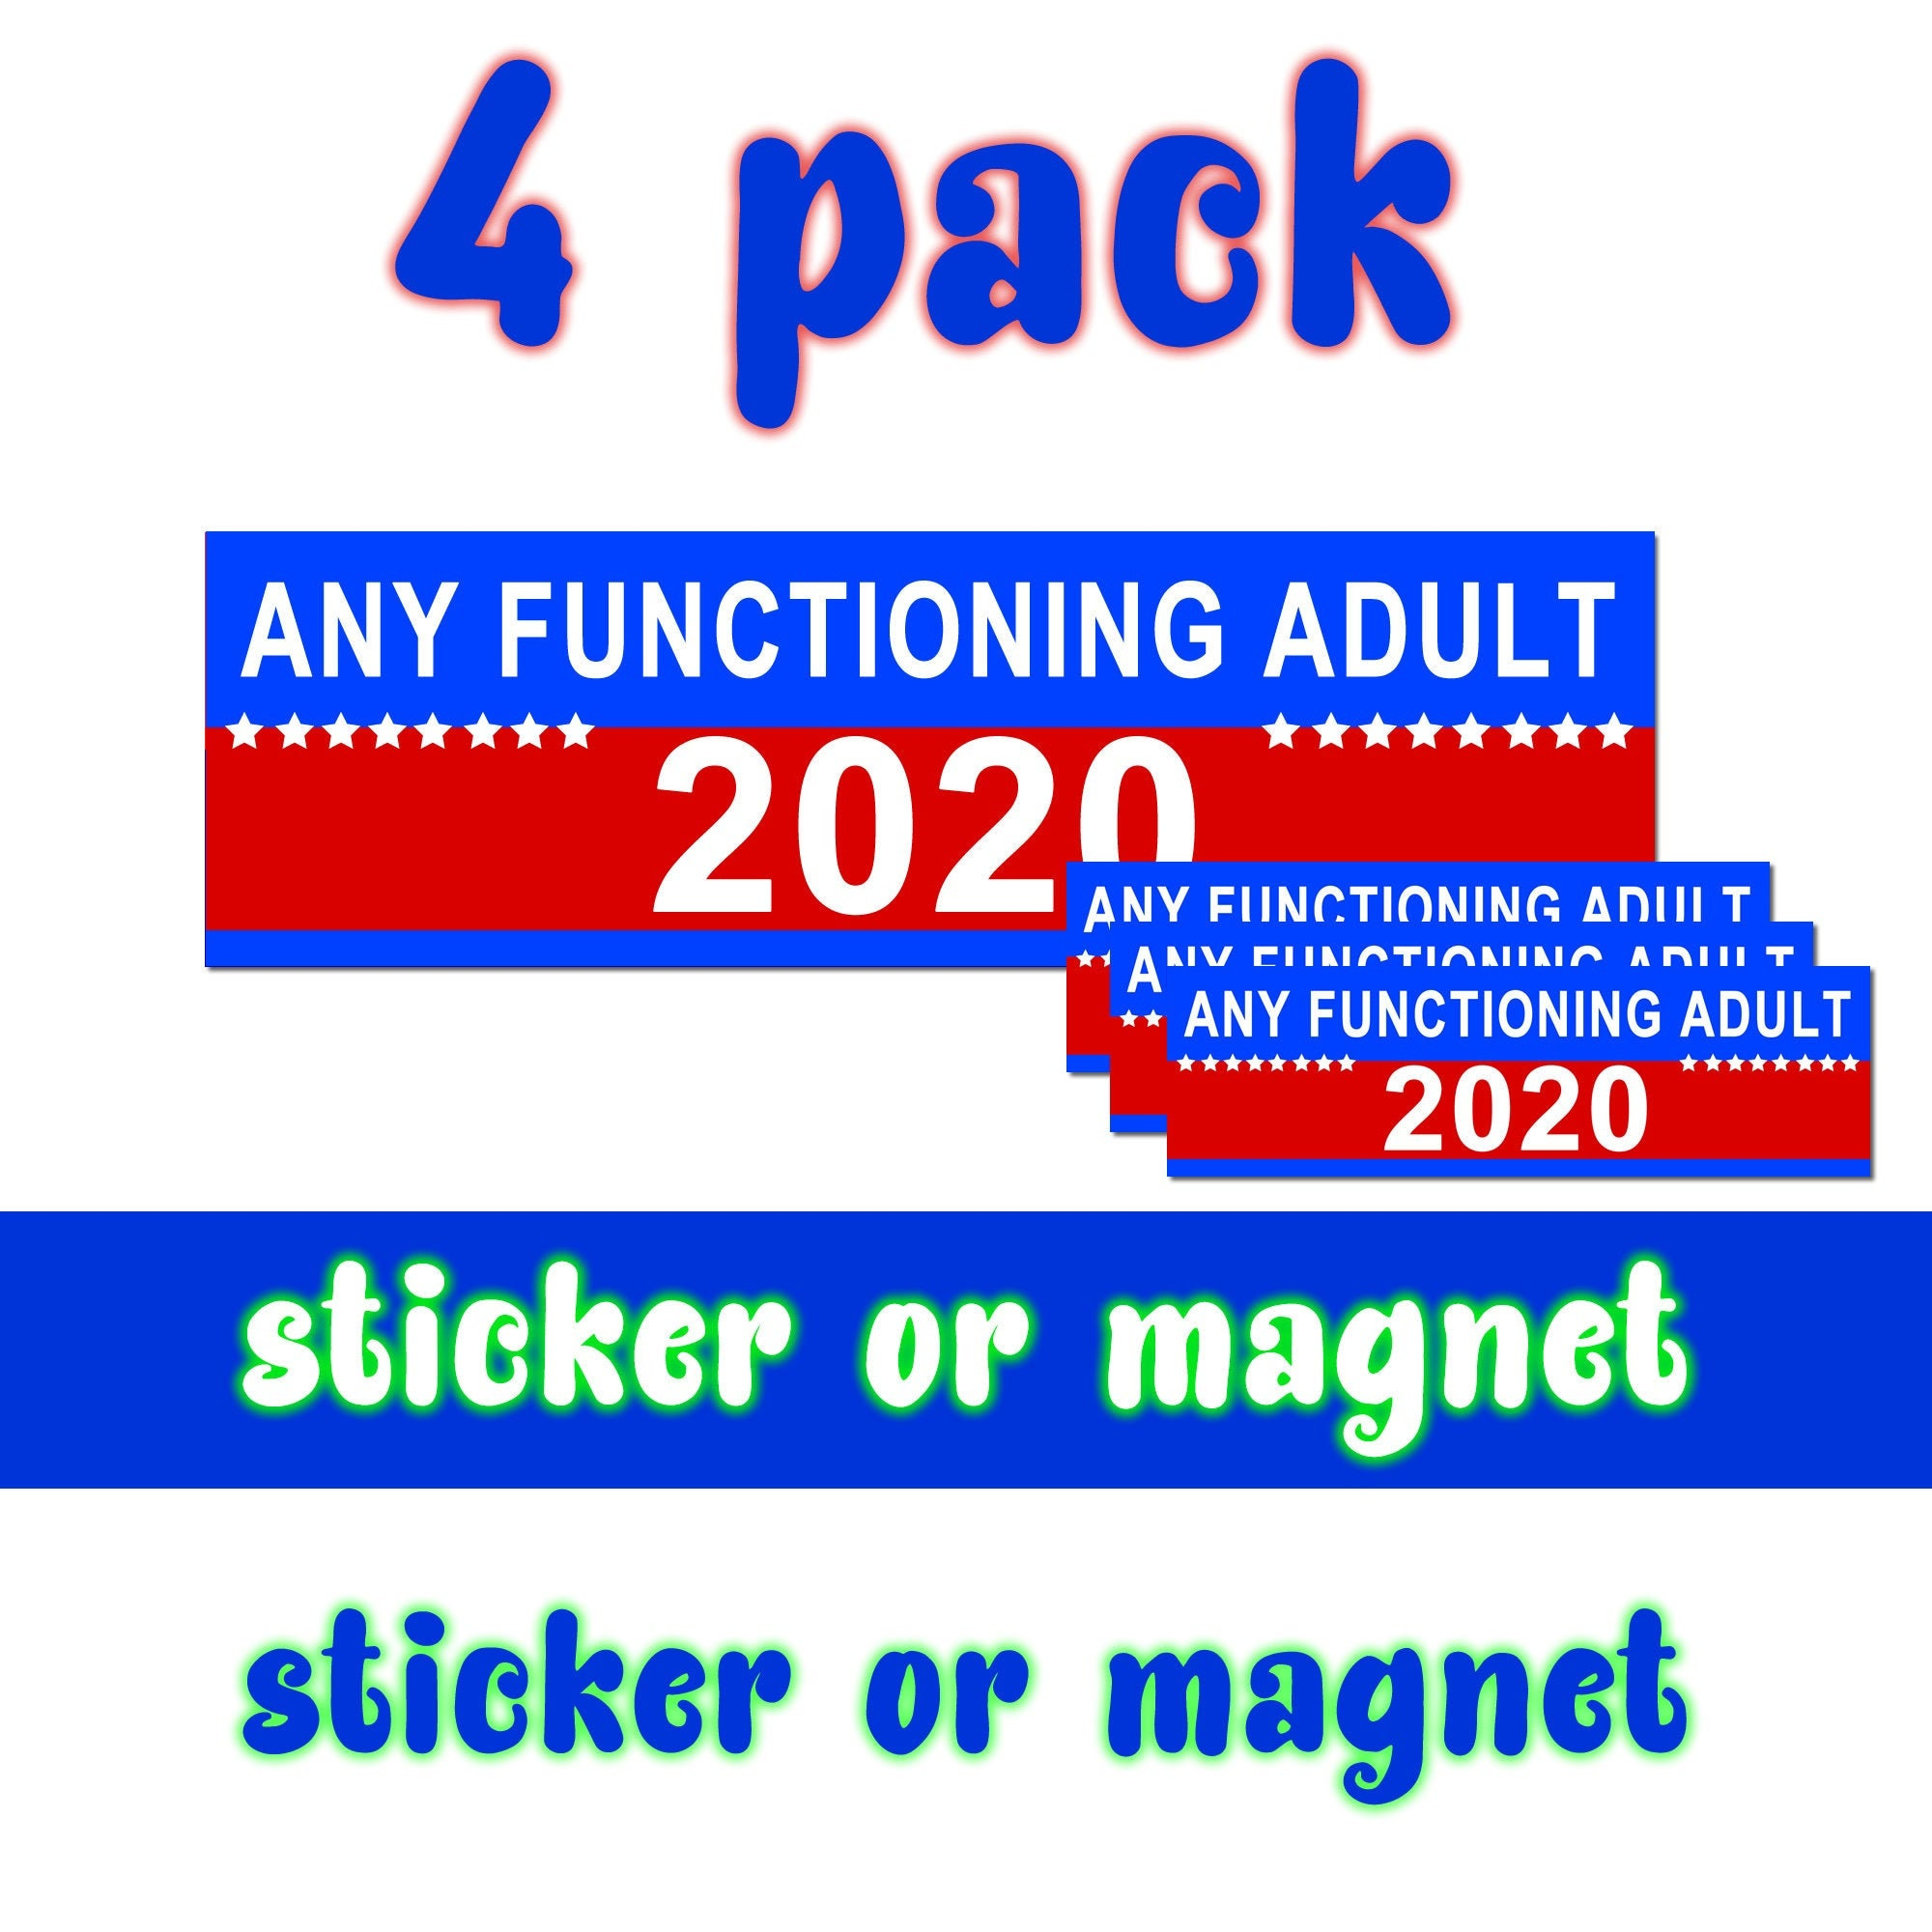 CAD$28.99 - 4X Any Functioning Adult 2020 10 x 3 Bumper Sticker or Magnetic Bumper Sticker Available